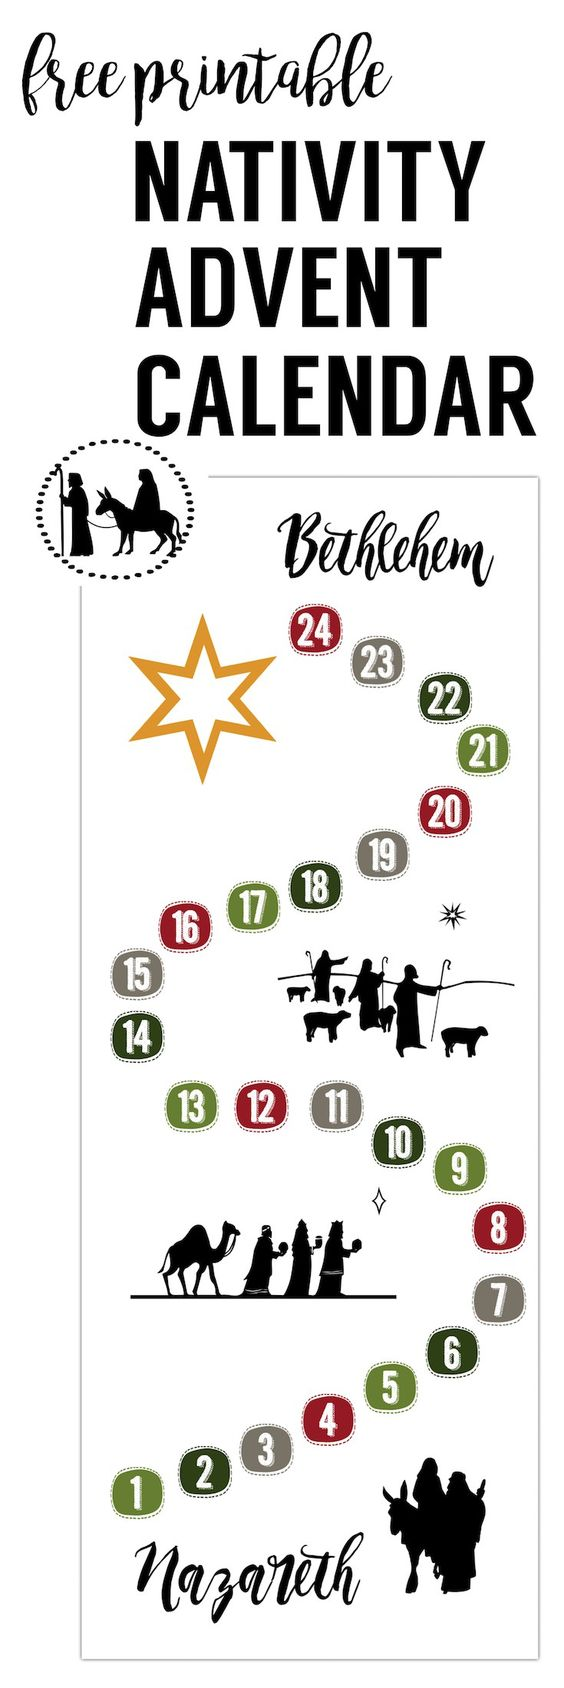 Print this Nativity Advent Calendar at home to help the kids remember the true meaning of Christmas. #DIYAdventCalendar #FreePrintable #Nativity